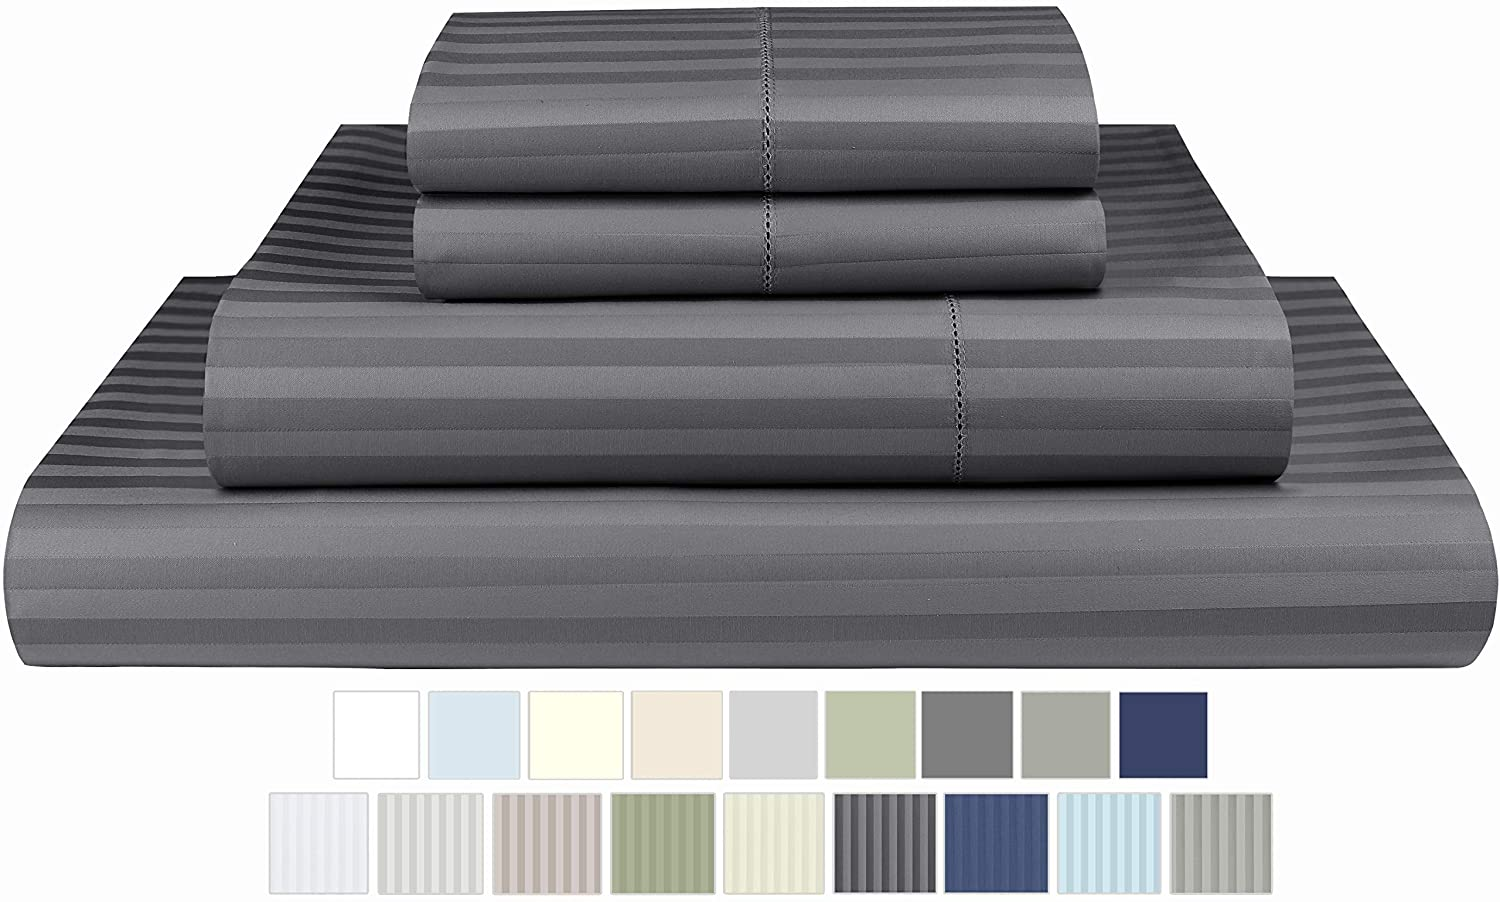 Threadmill Home Linen 600 Thread Count 100% Cotton Sheets, 1CM Damask Stripe Dark Grey California King Sheets 4 Piece Set Hemstitch, ELS Combed Cotton Bed sheets, Sateen Fits Mattress with Deep Pocket